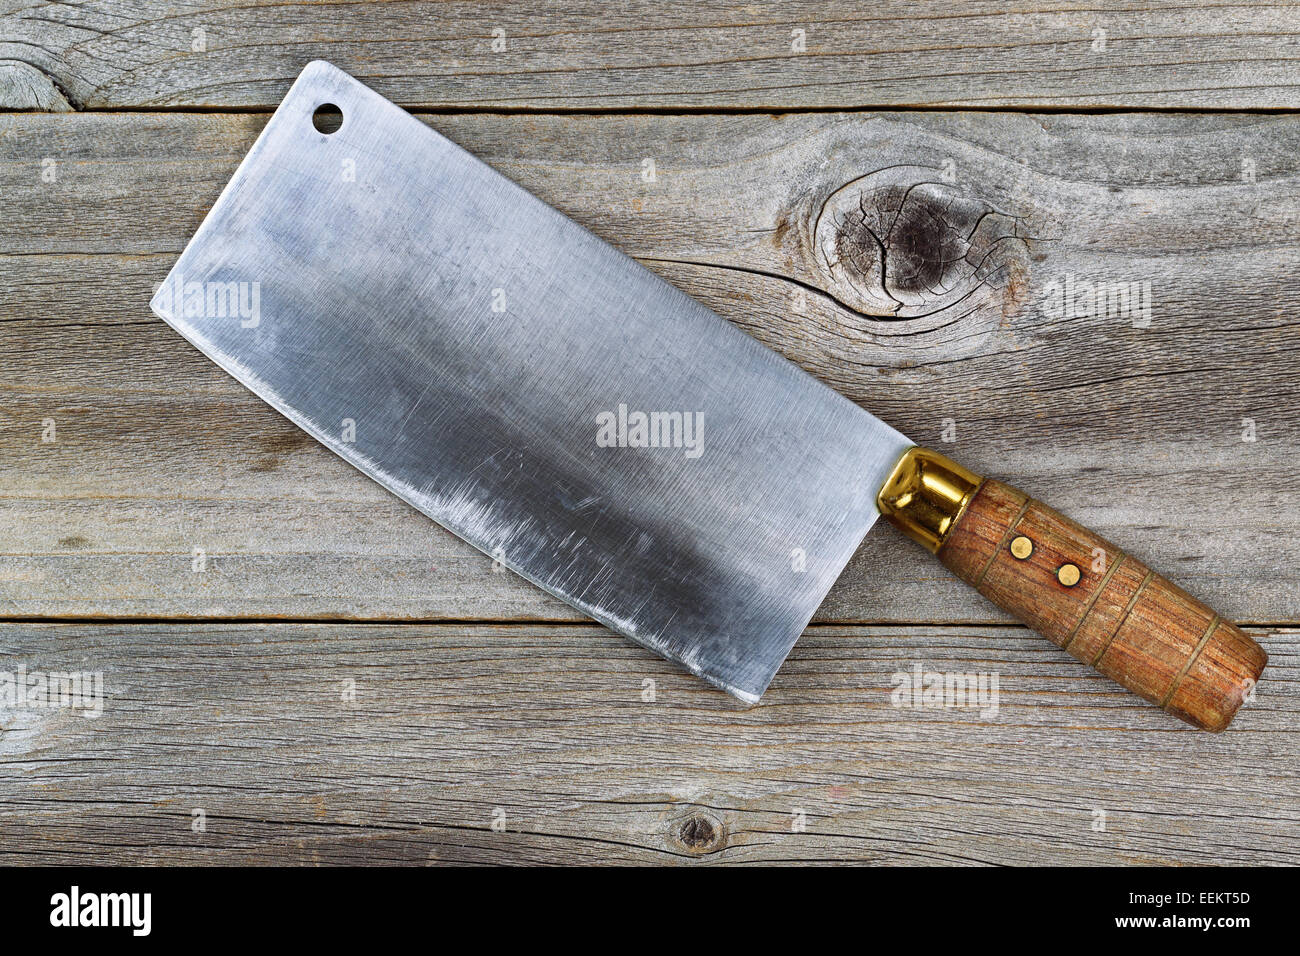 Close up of a large old traditional butcher knife on rustic wood - Stock Image